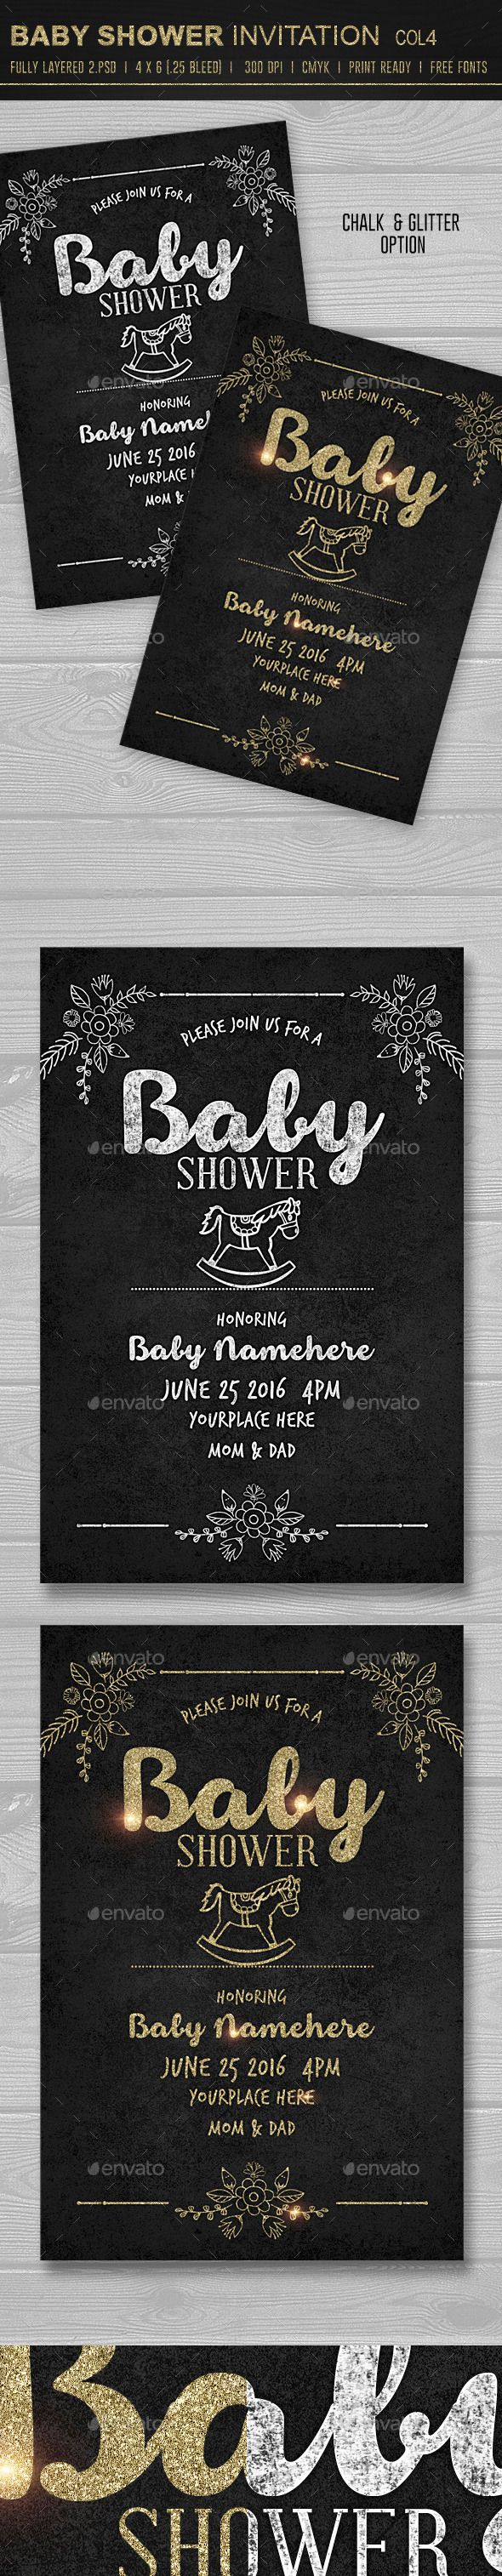 free bridal shower advice card template%0A Baby Shower Invitation    Print TemplatesDesign TemplatesCard